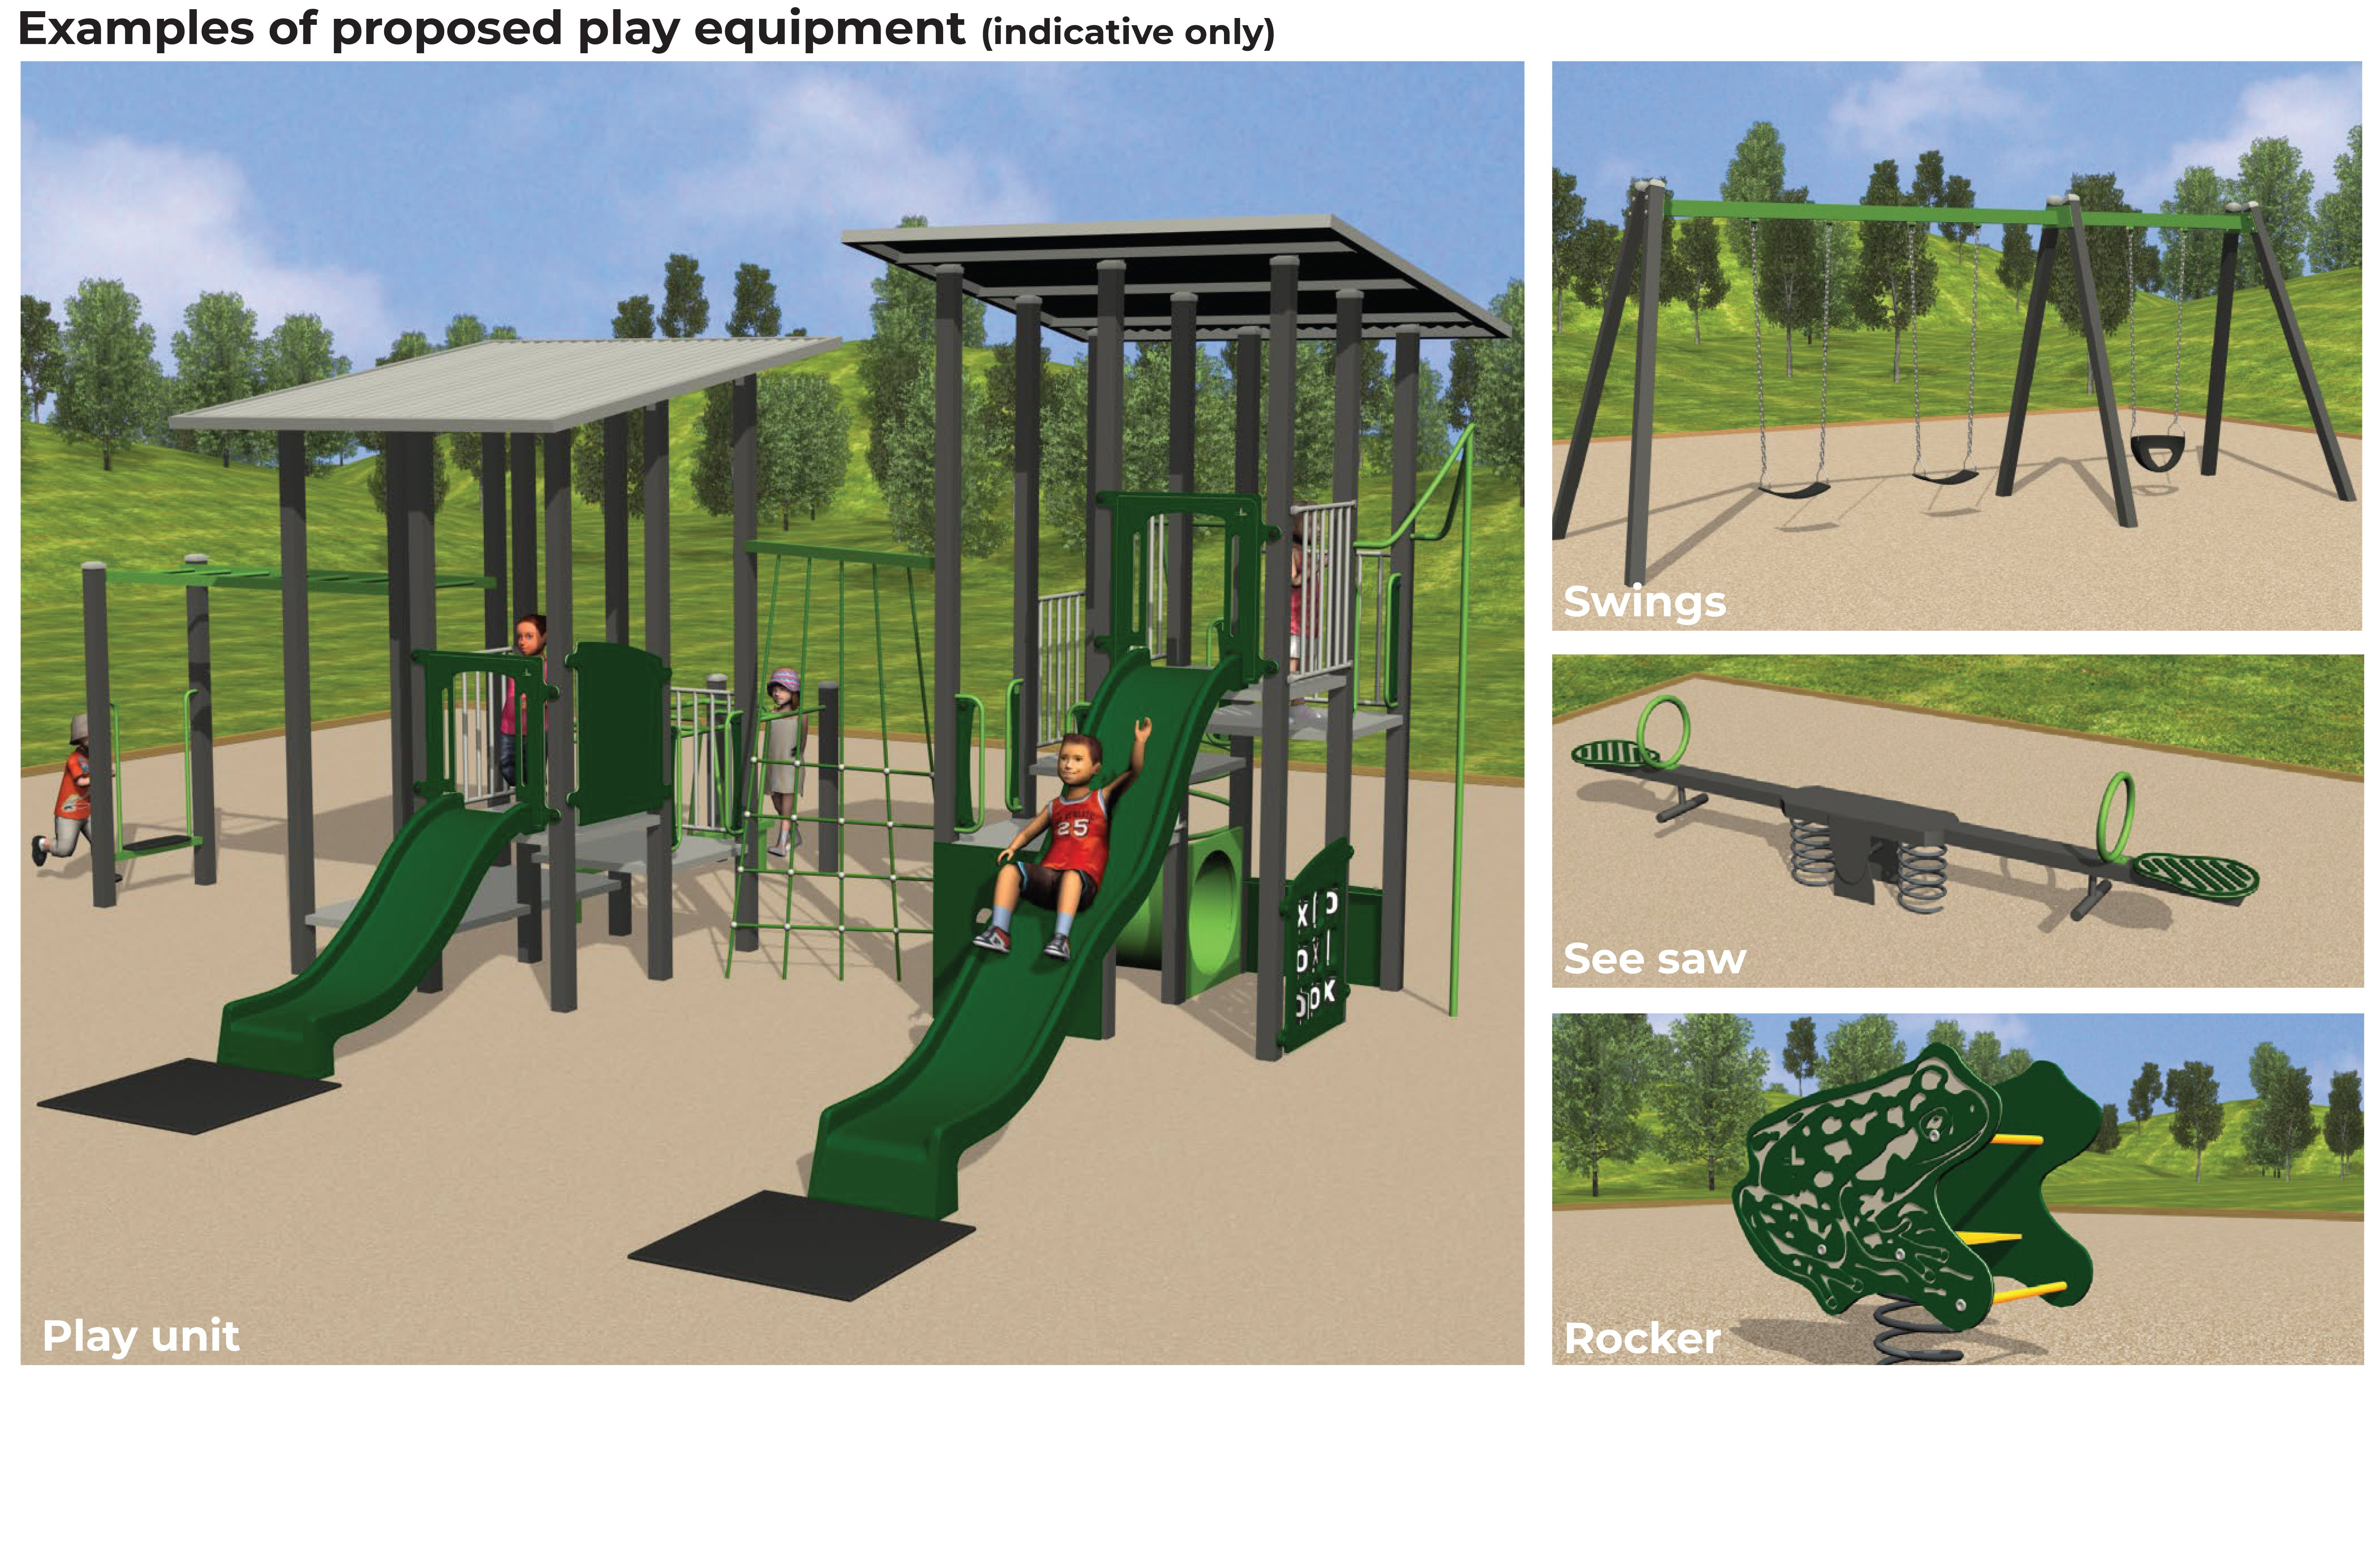 Greenfield Court Reserve - Proposed Play Equipment